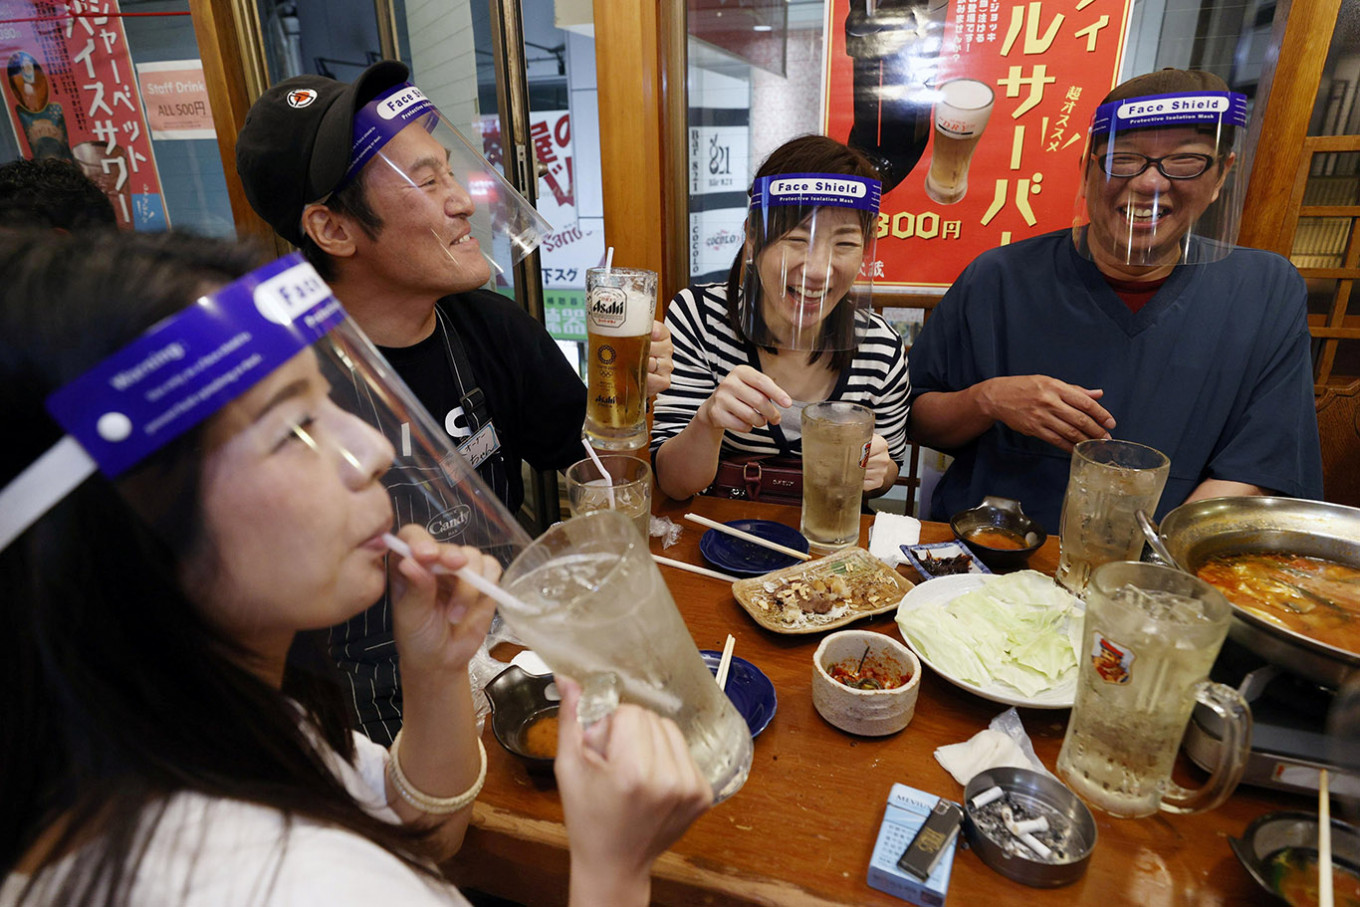 Osaka to ask citizens to avoid drinking in groups of 5 or more